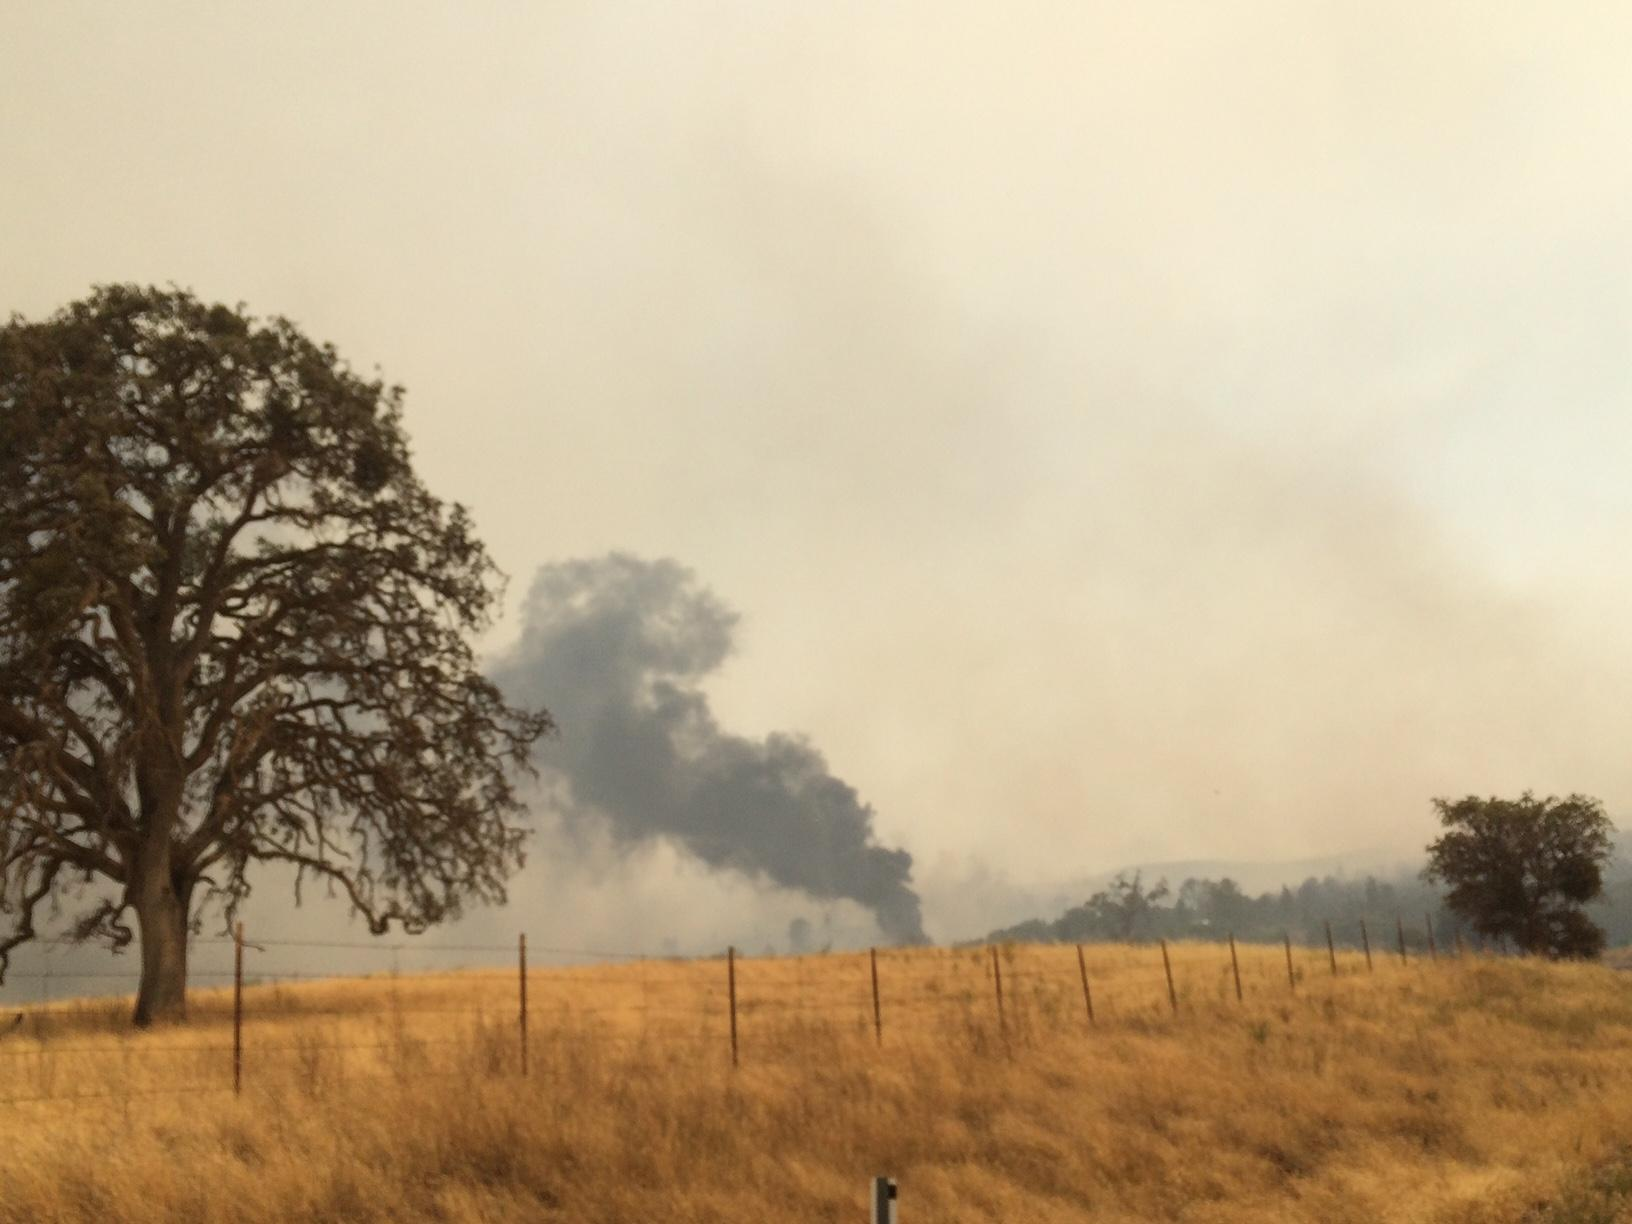 Detwiler Fire Forces Mass Evacuations In Mariposa